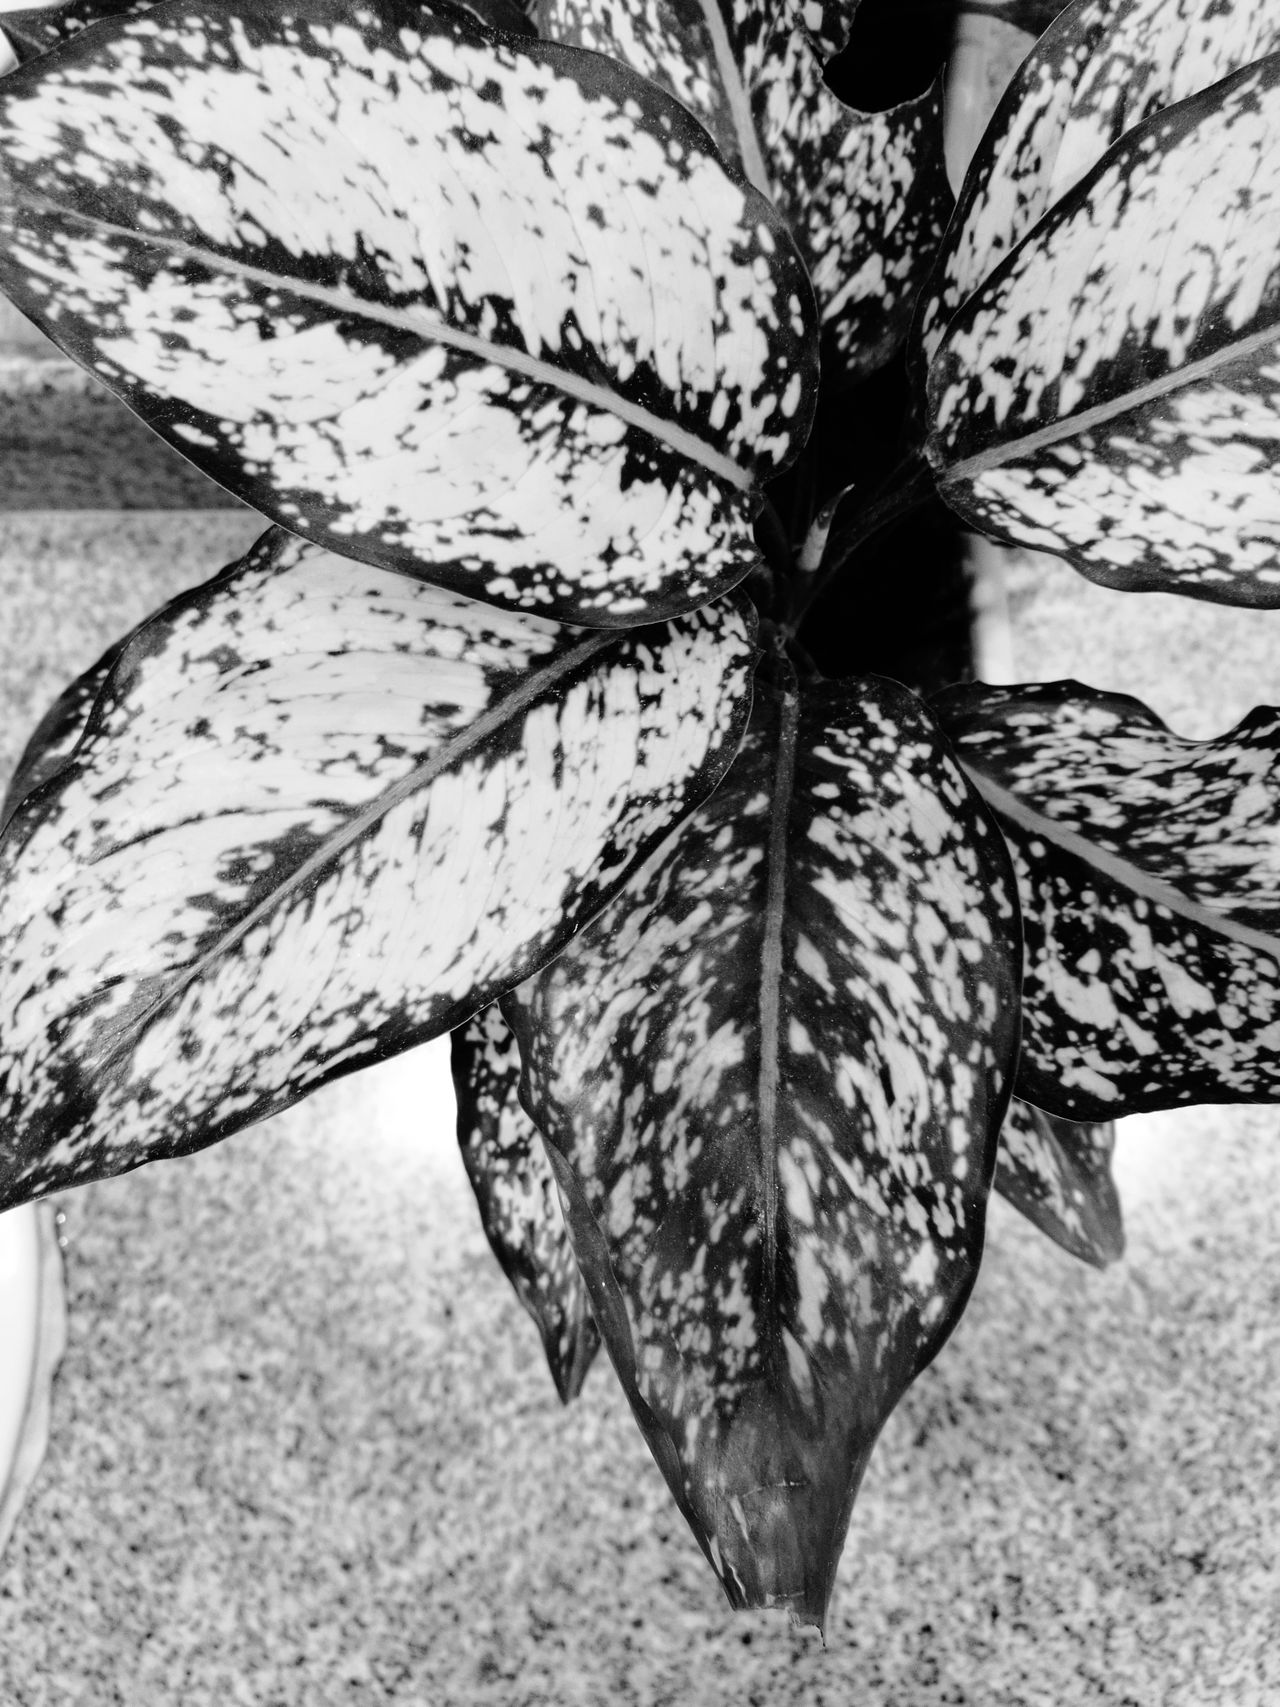 Nature No People Outdoors Close-up Leaf Day Fragility Black & White Tree EyeEm Thailand Indoors  Growth EyeEm Best Shots Freshness Plant EyeEmBestPics Beauty In Nature Indoors  Blackandwhite Black And White Indoors  Nature